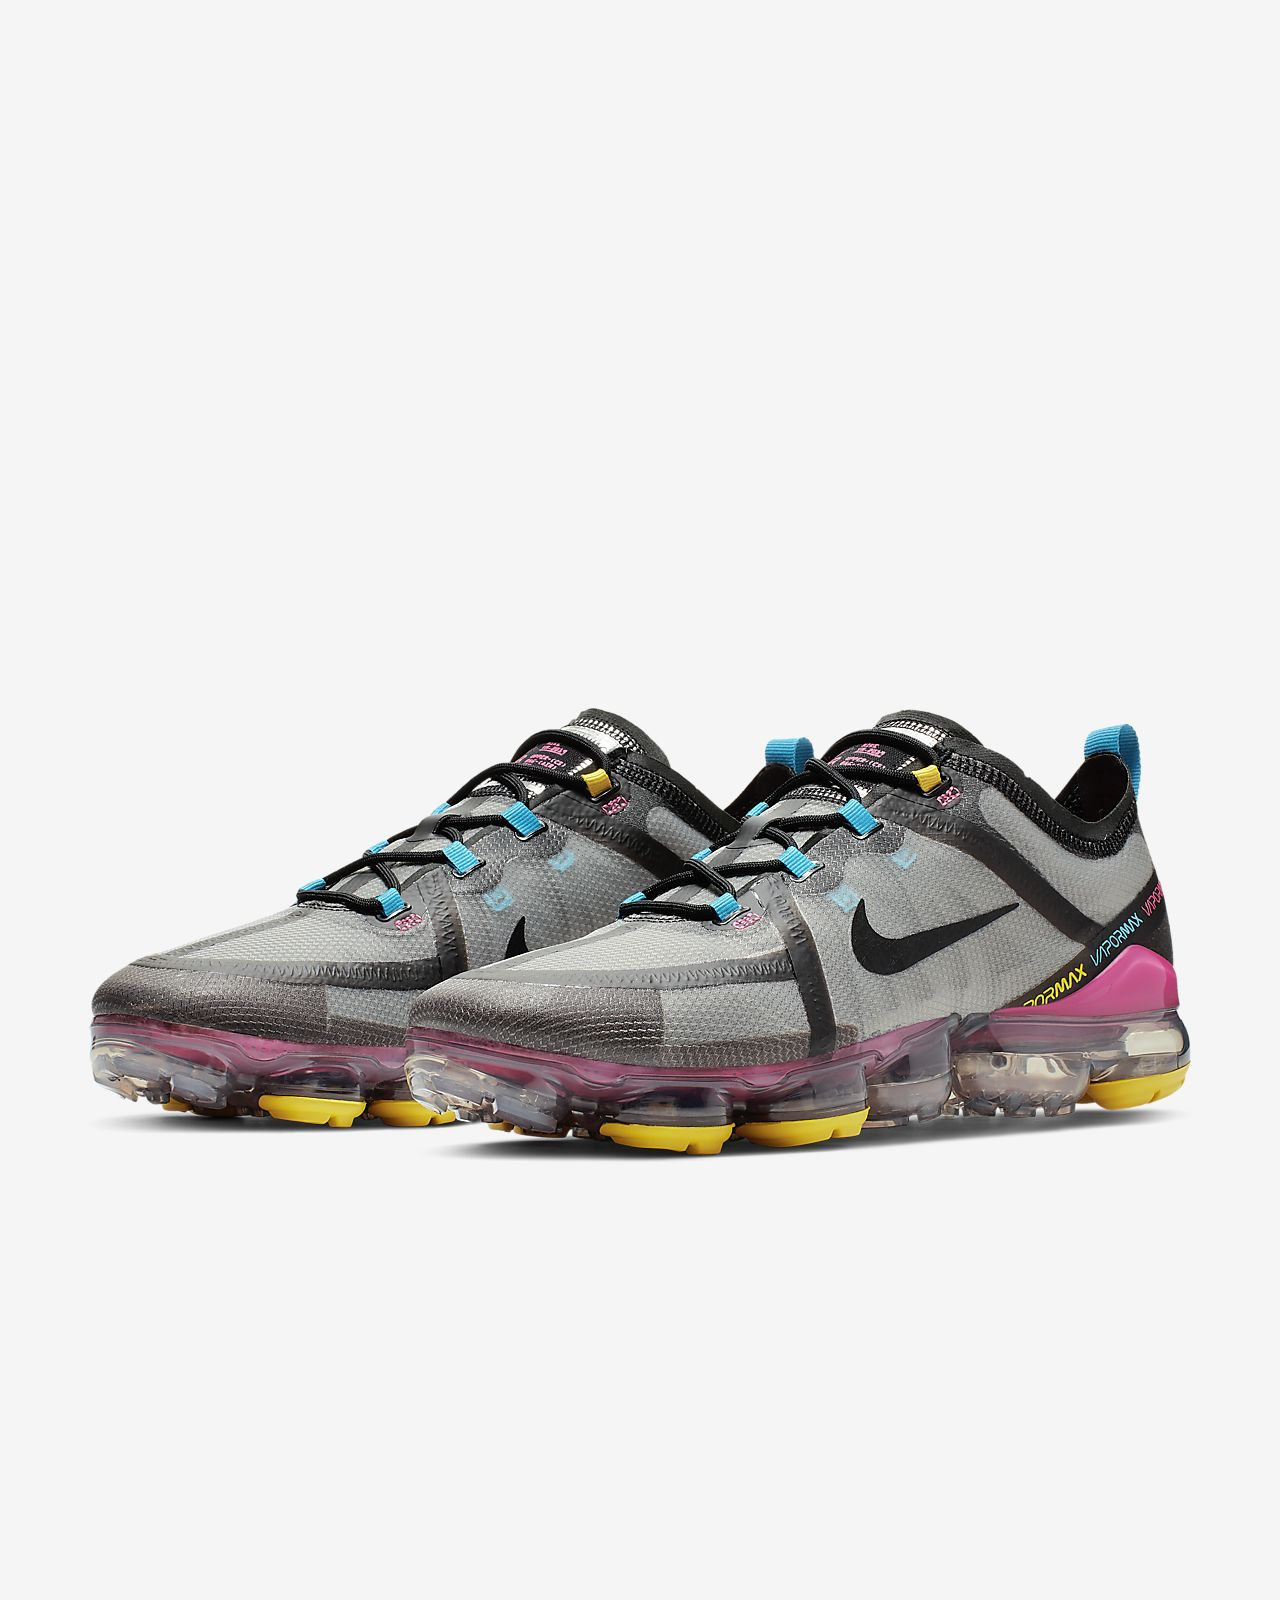 sale retailer 8dbf5 19649 ... Nike Air VaporMax 2019 Men s Shoe